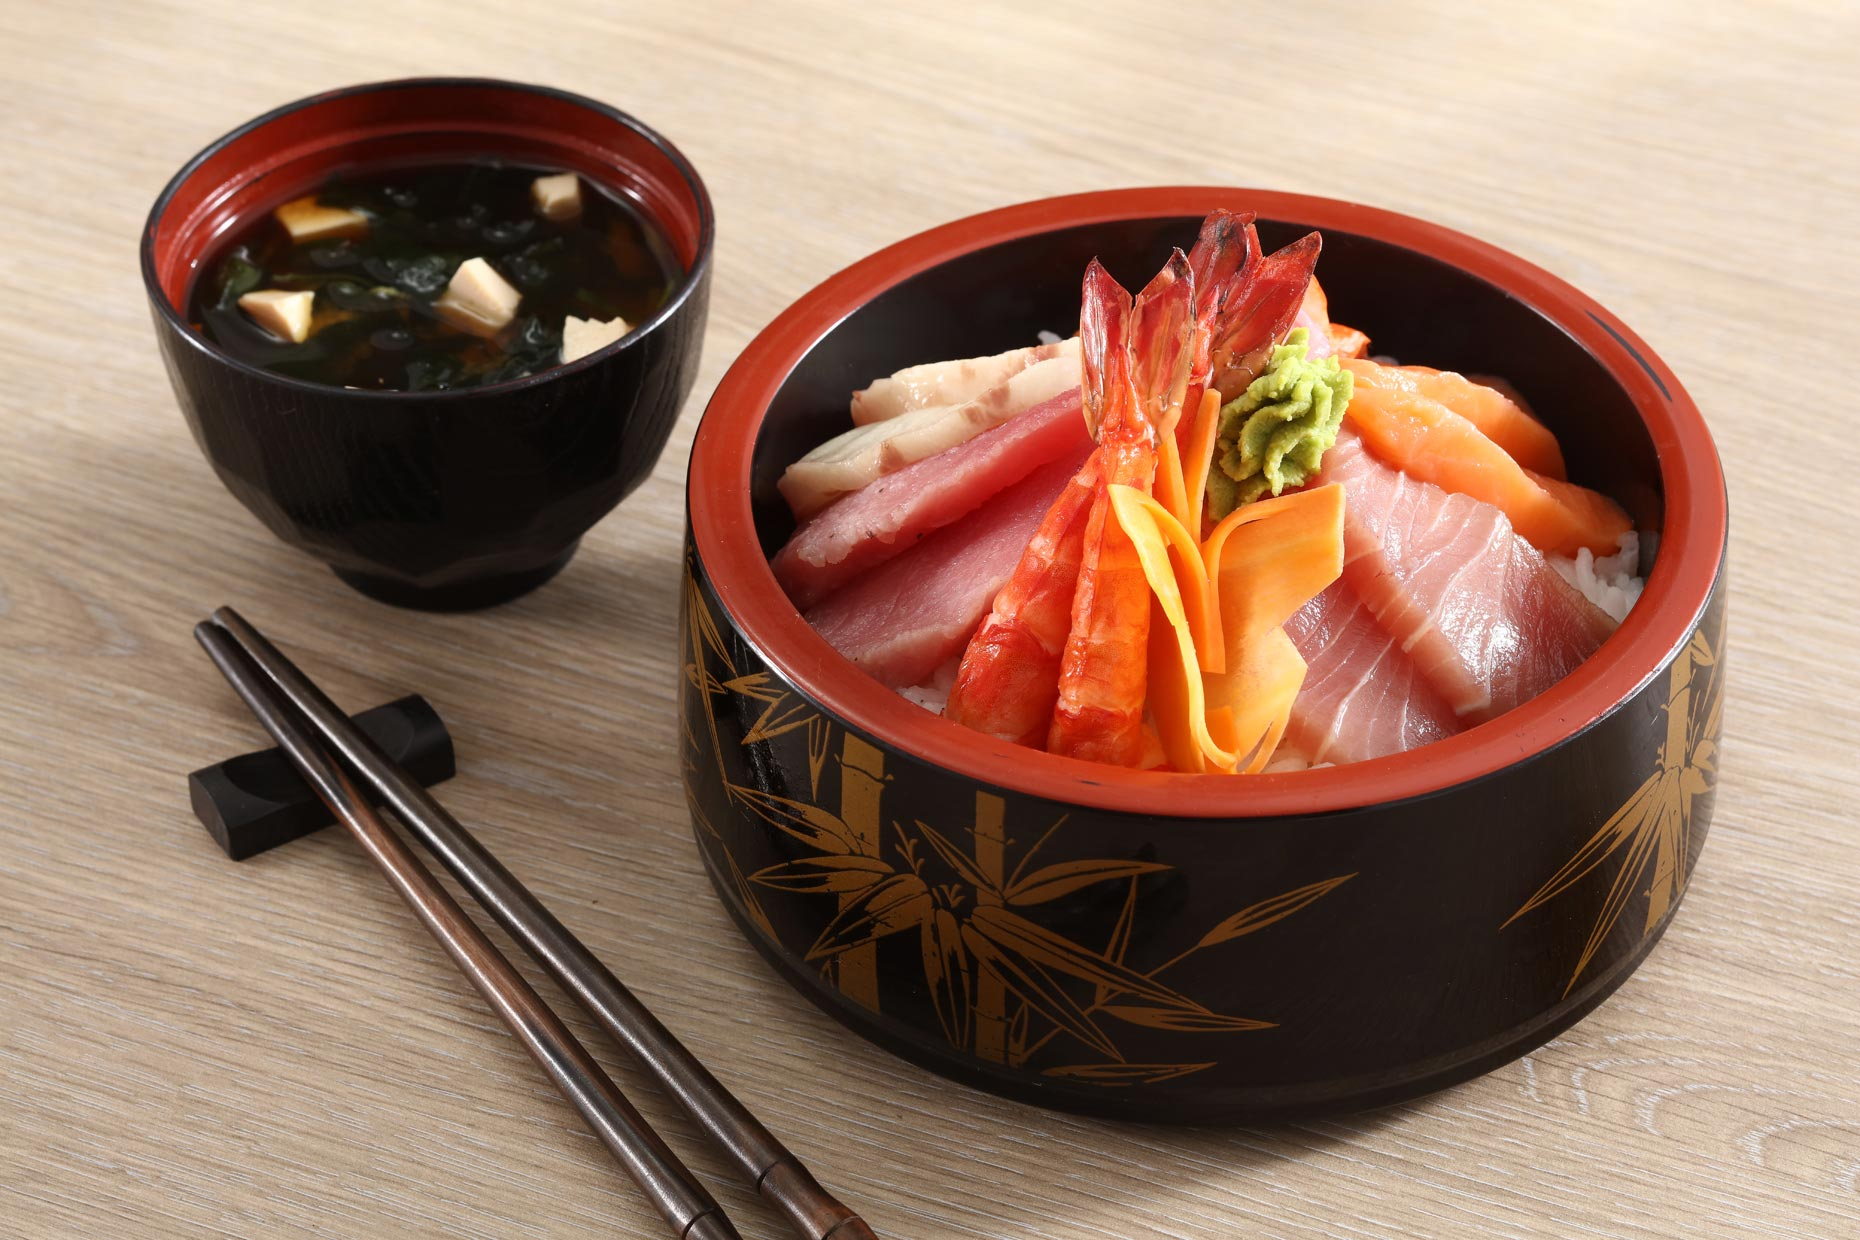 Sushi Bowl. Food photography for Japanese restaurant in Boracay.